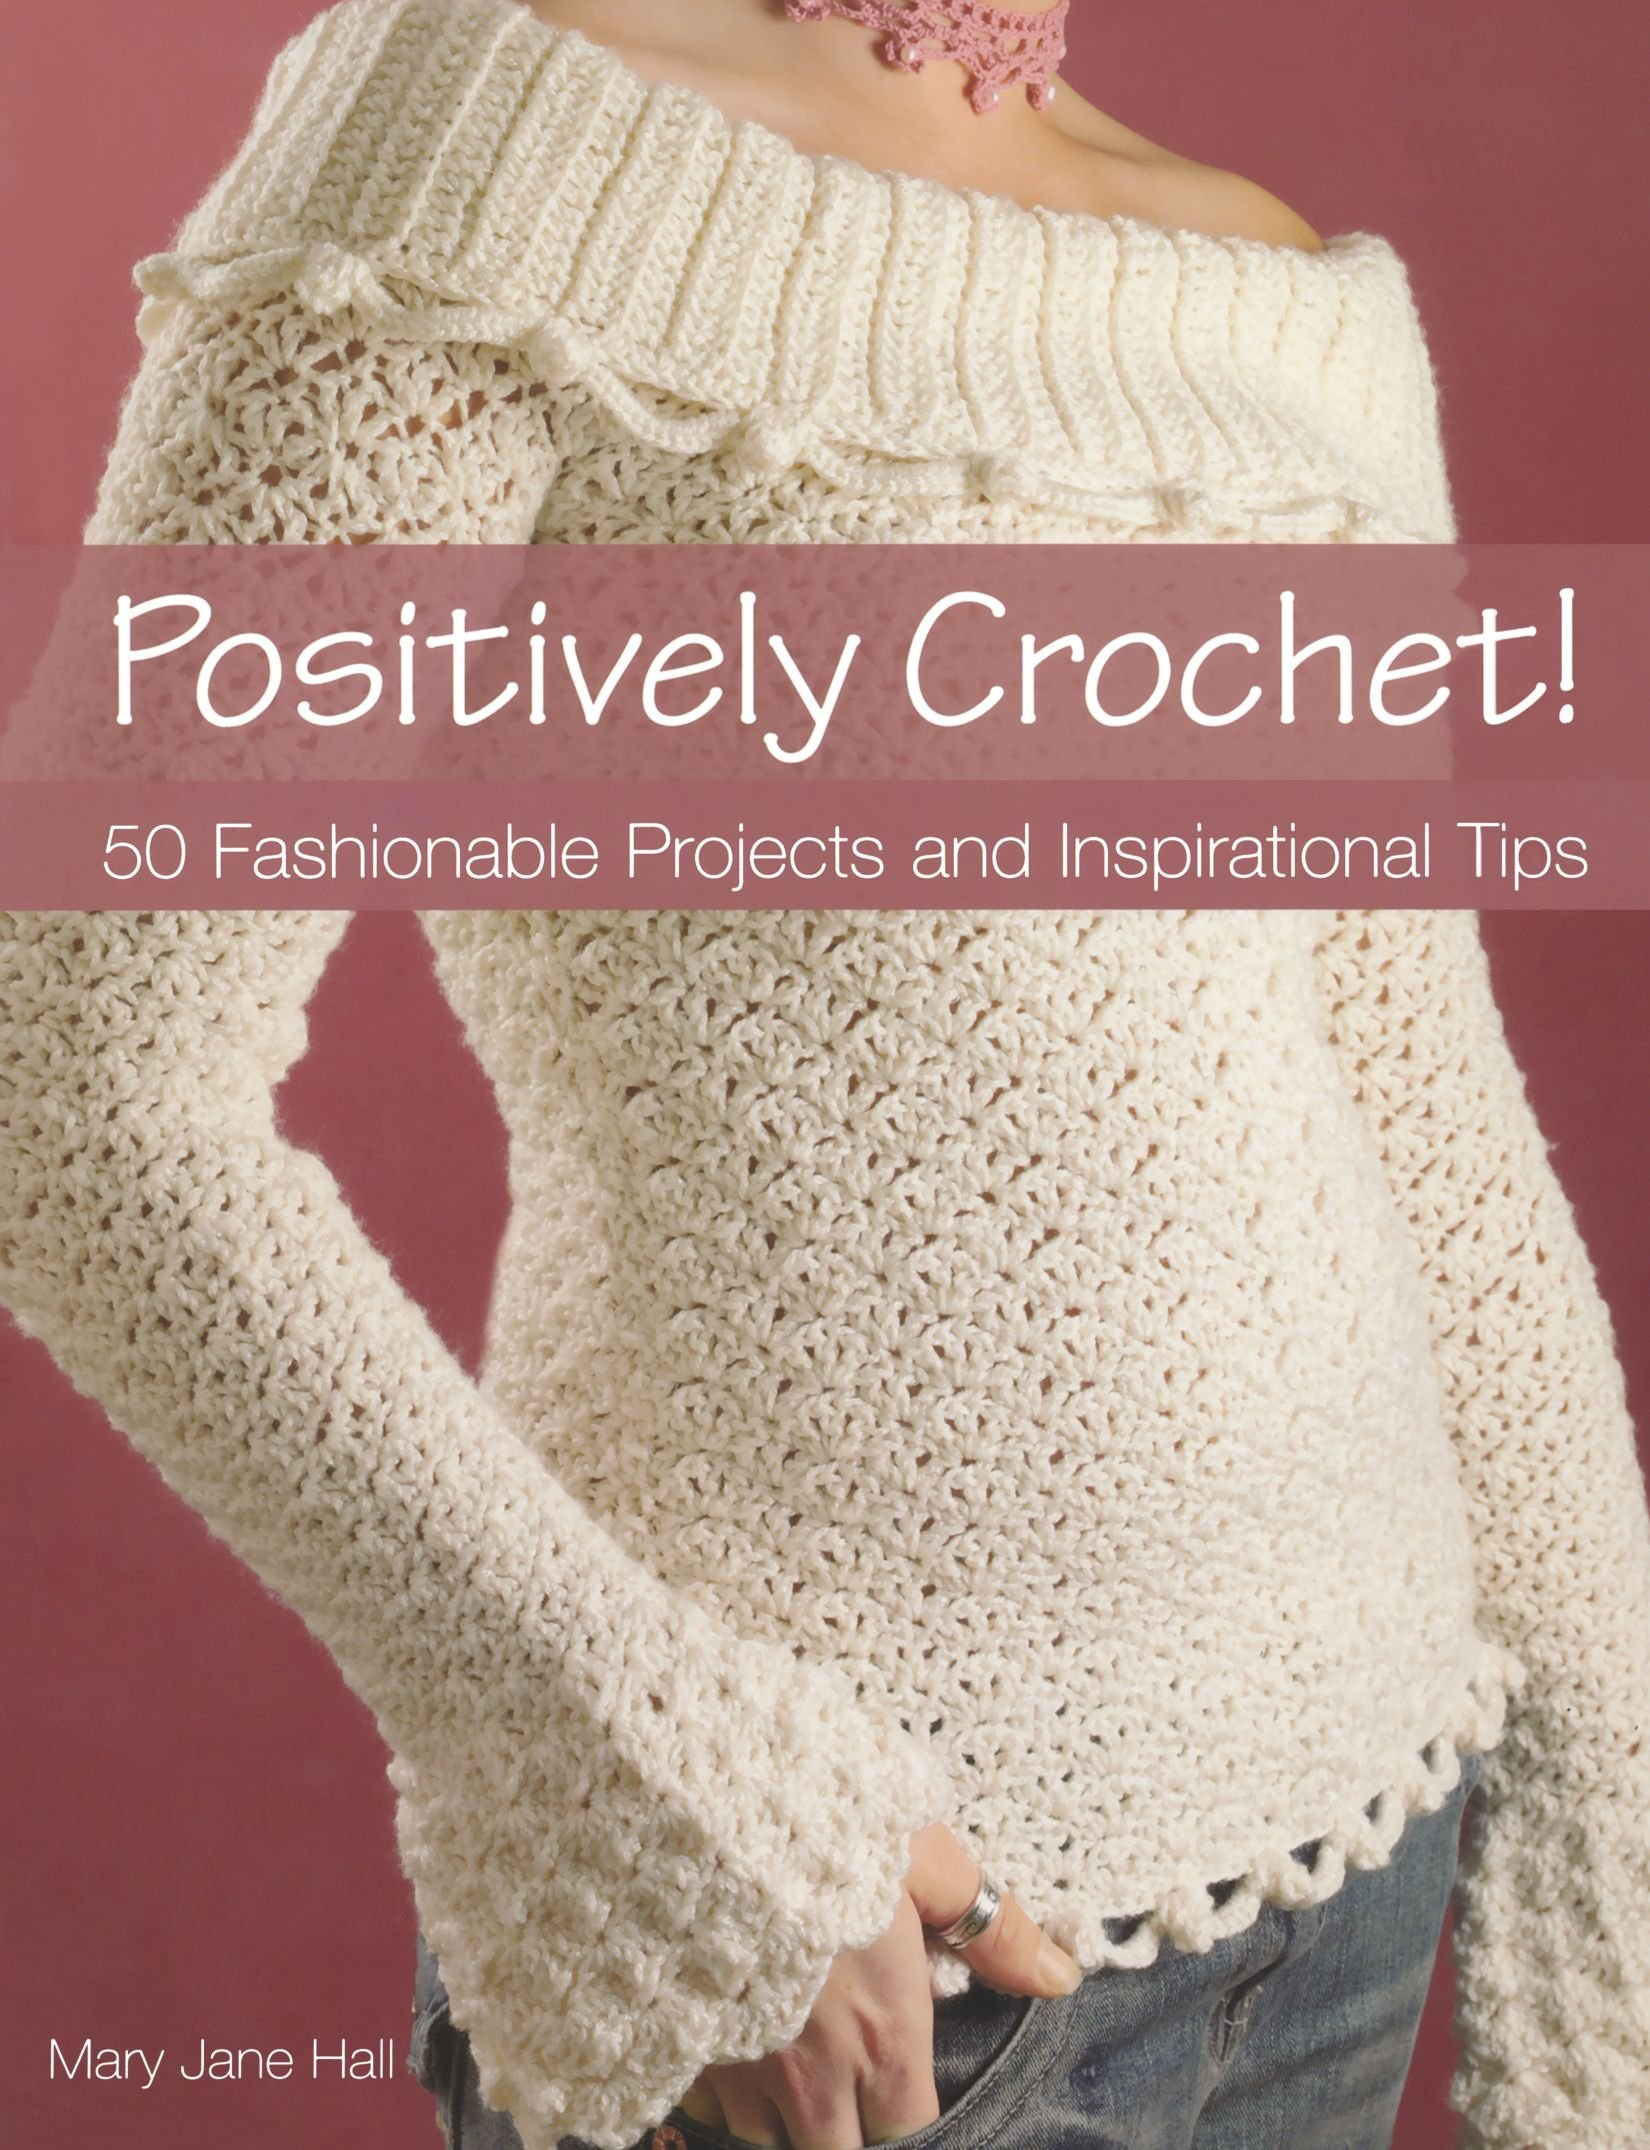 Positively Crochet!: 50 Fashionable Projects and Inspirational Tips: Mary  Jane Hall: 9780896895171: Amazon.com: Books